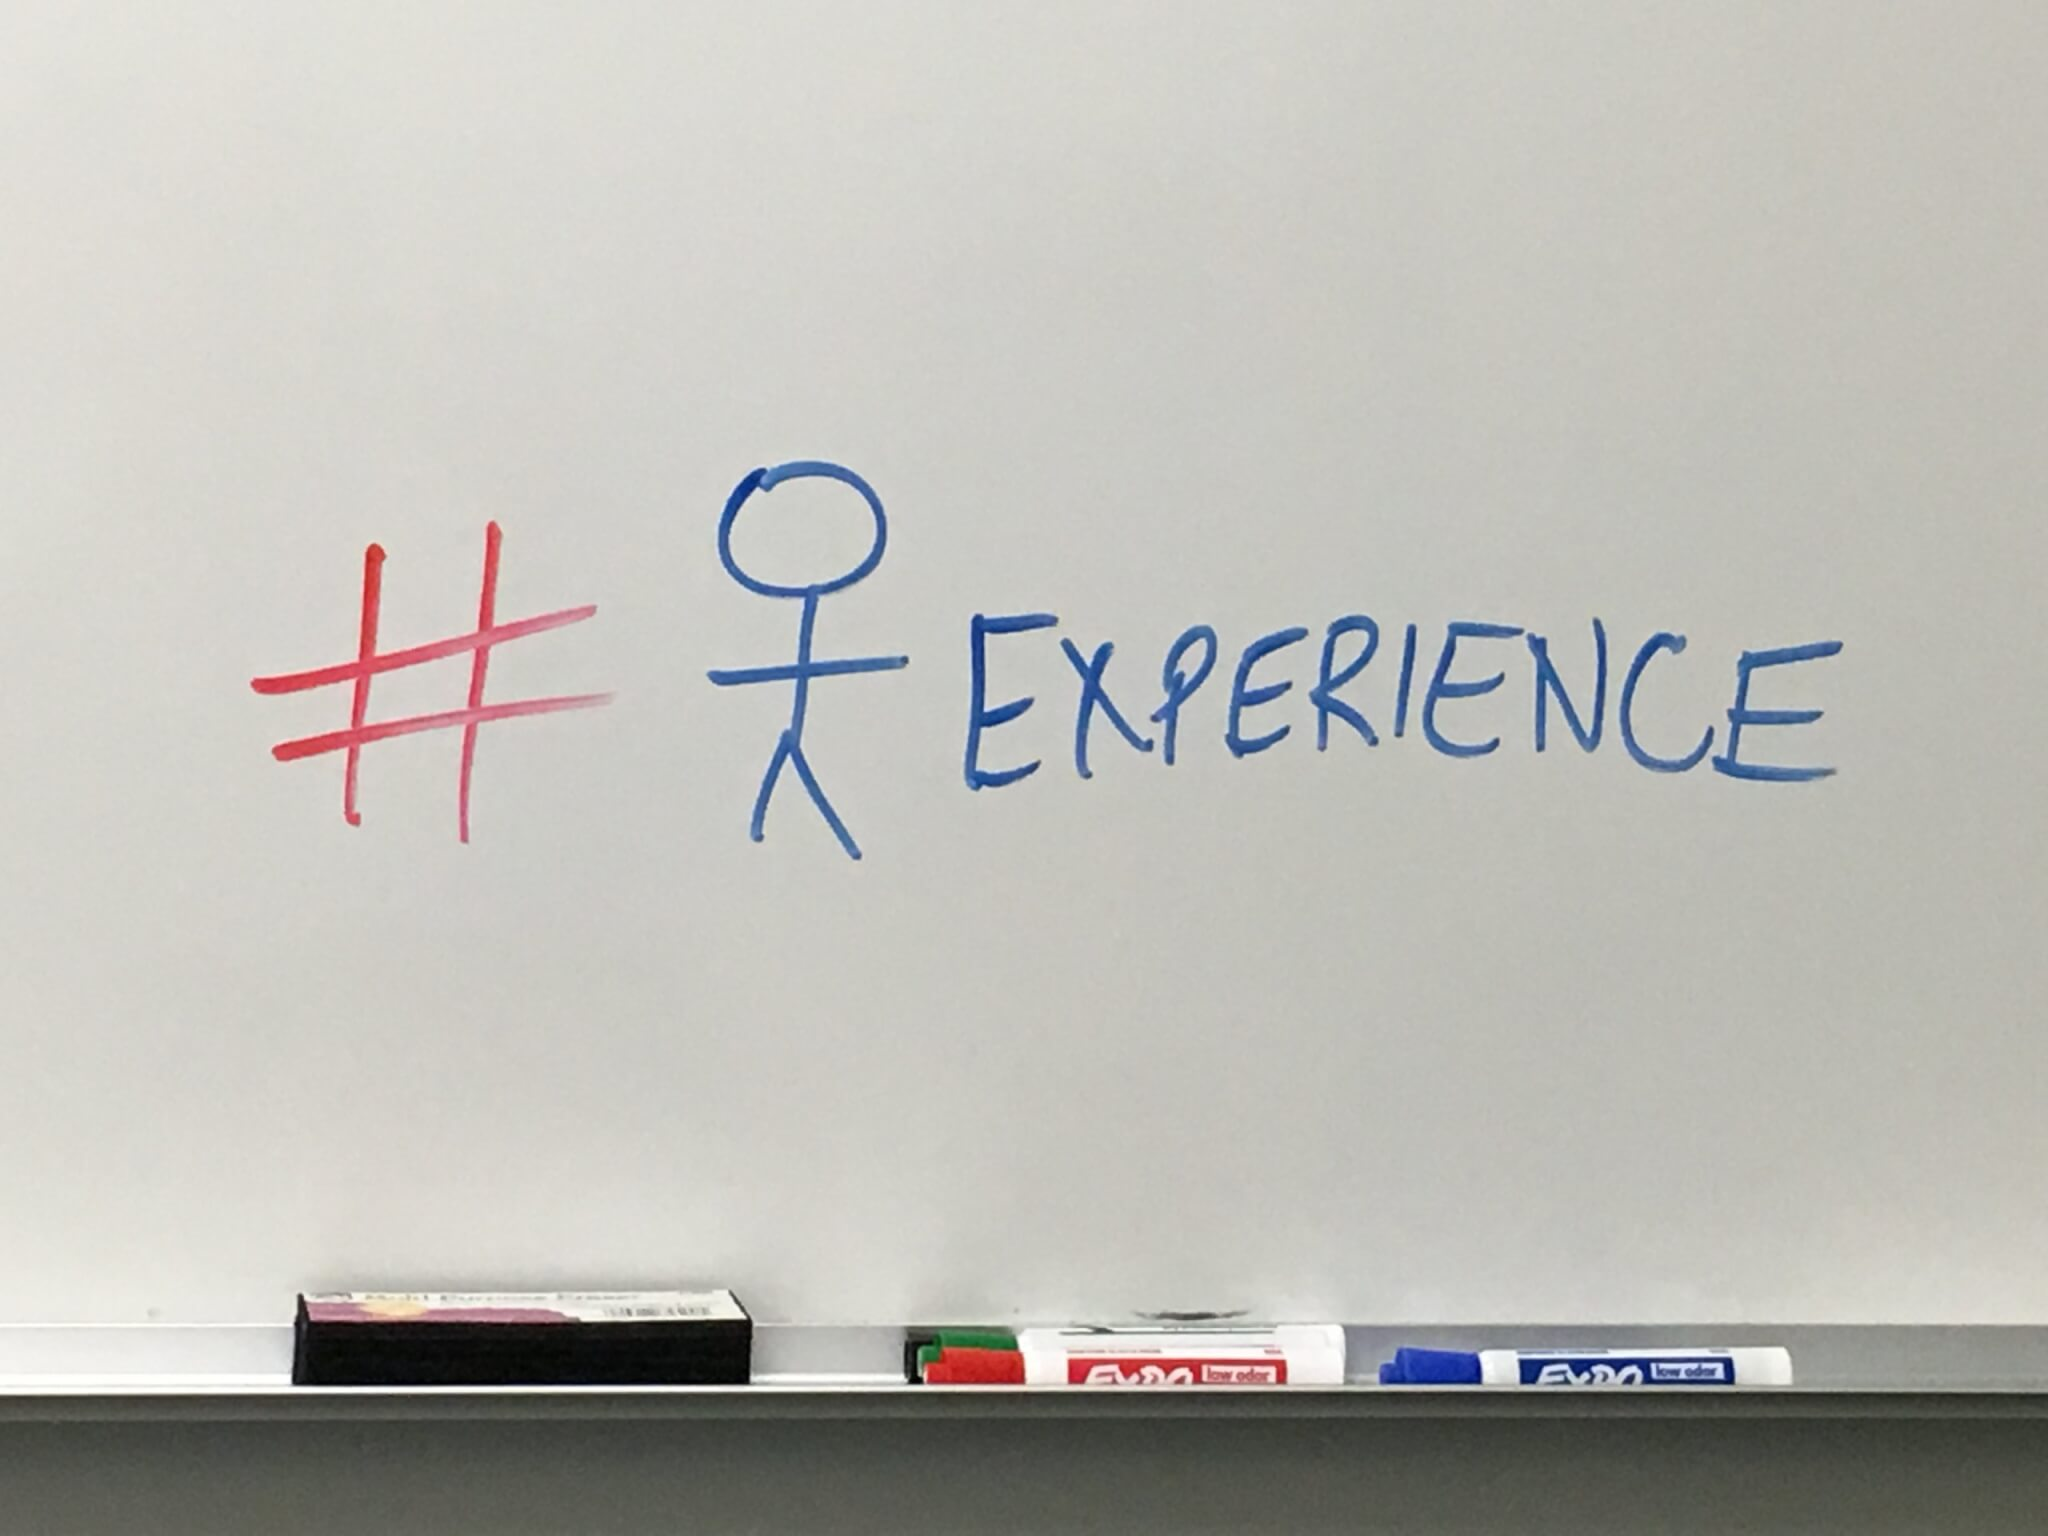 whiteboard hashtag experience